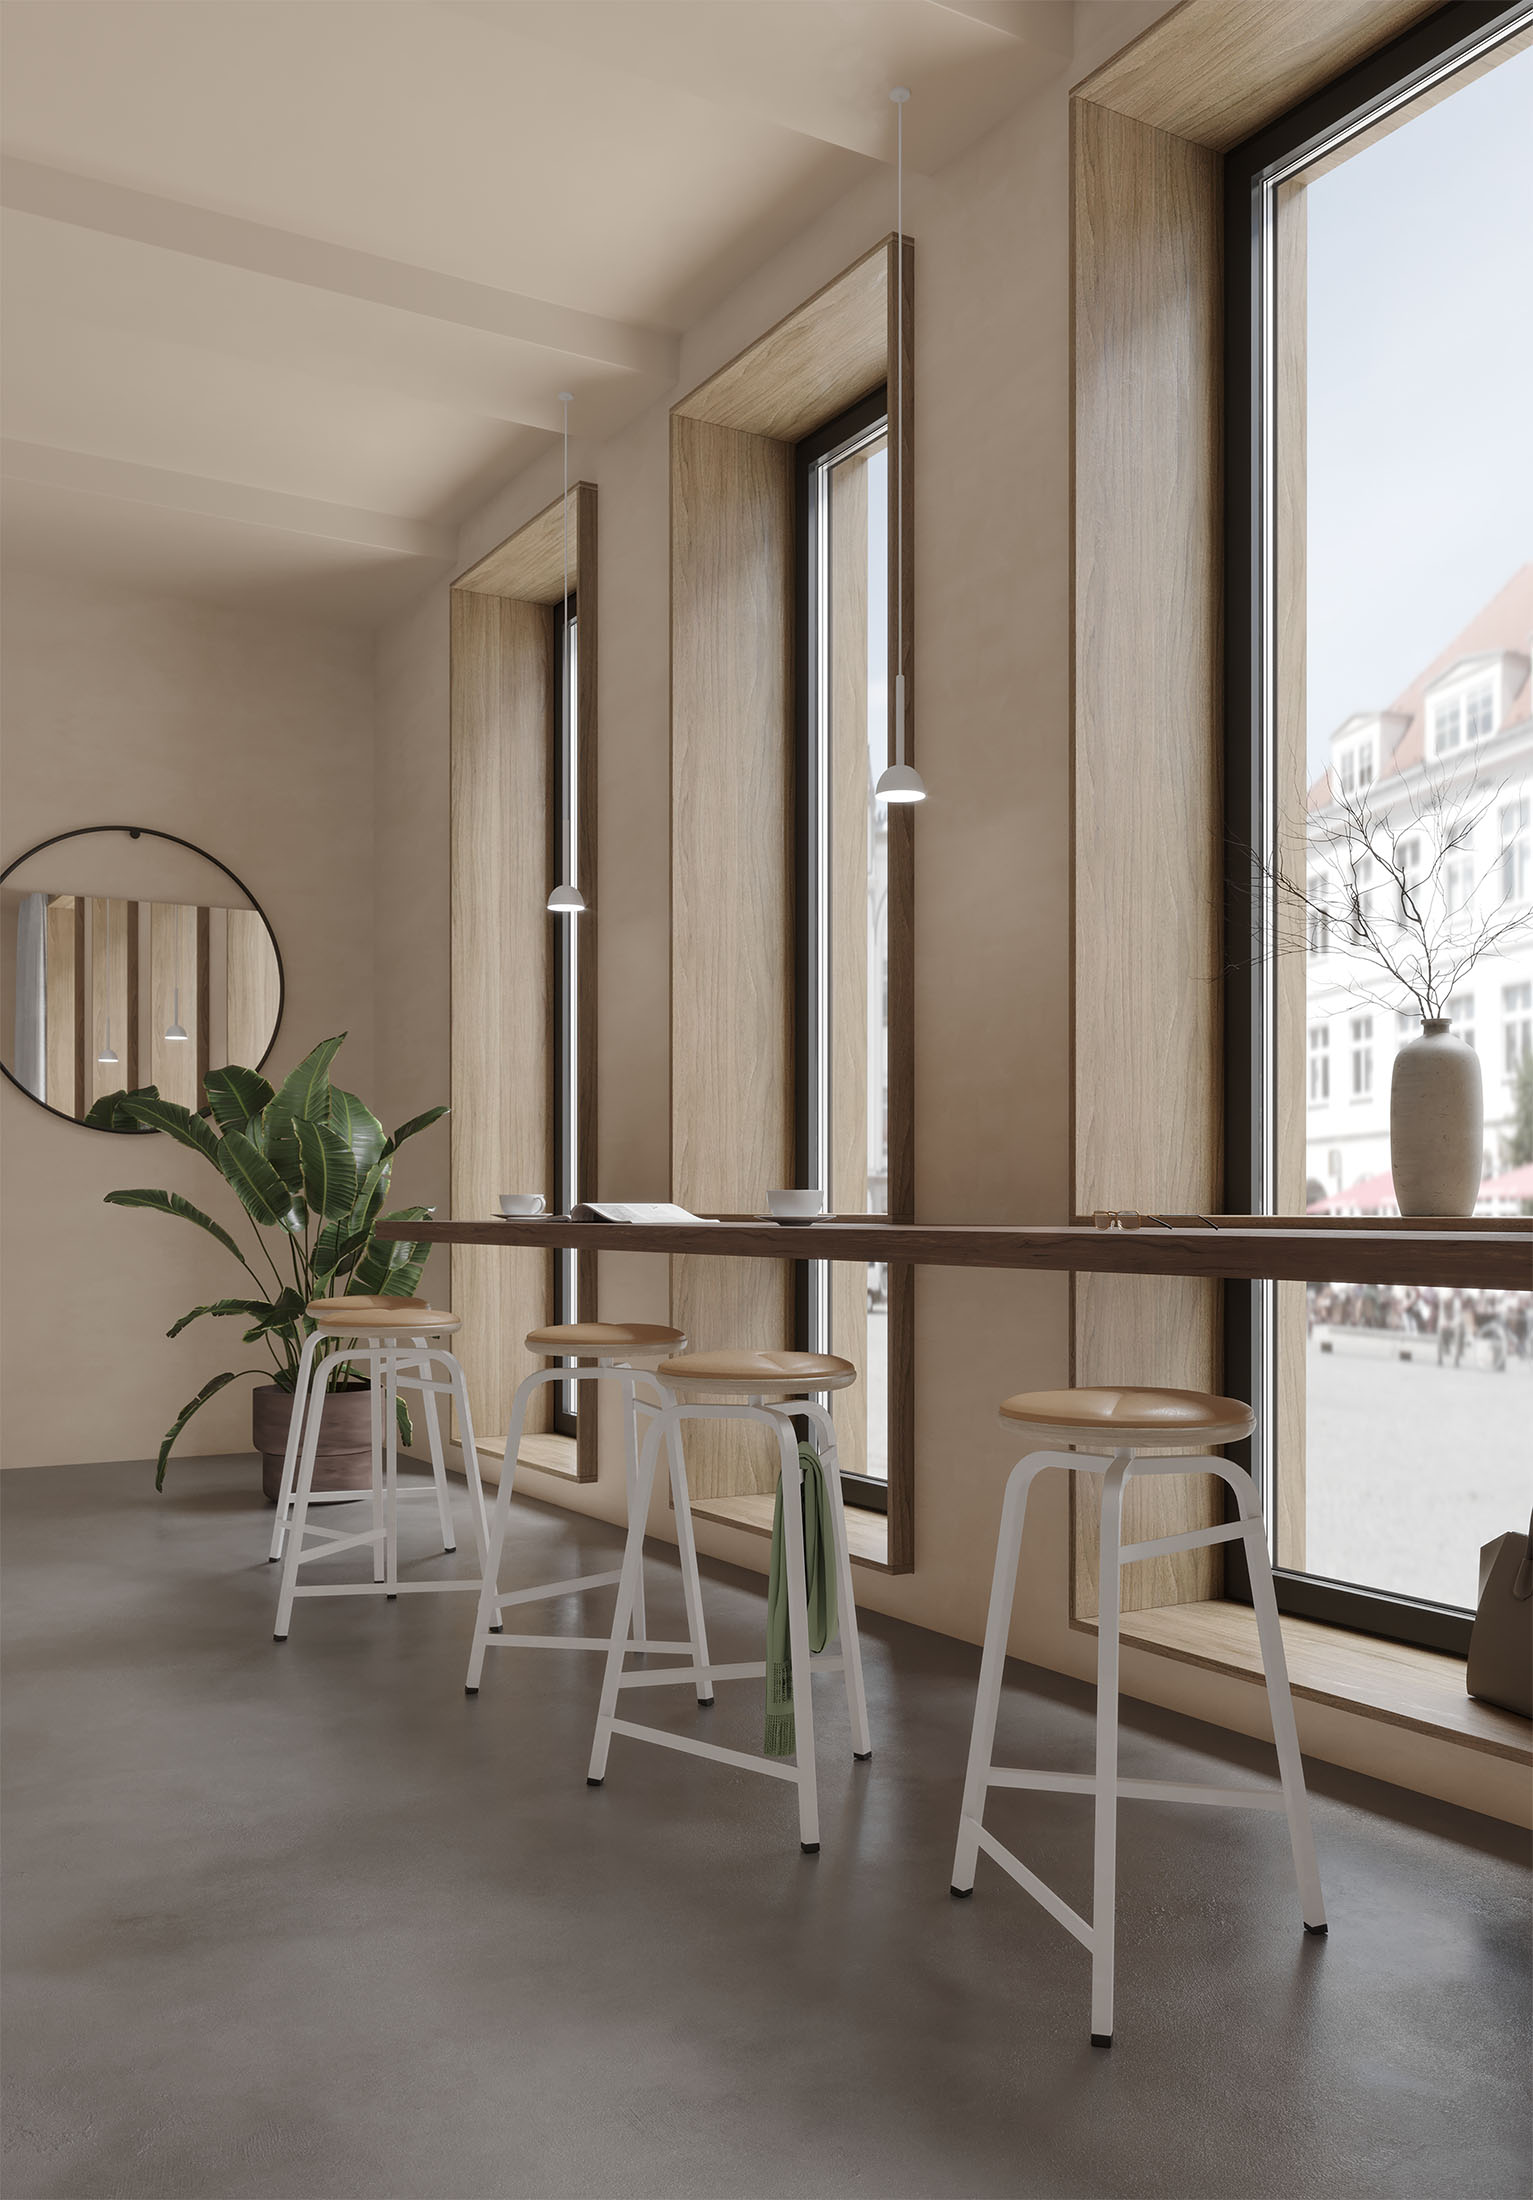 Treble_bar_stool_white_group_cafe_Northern_Low-res